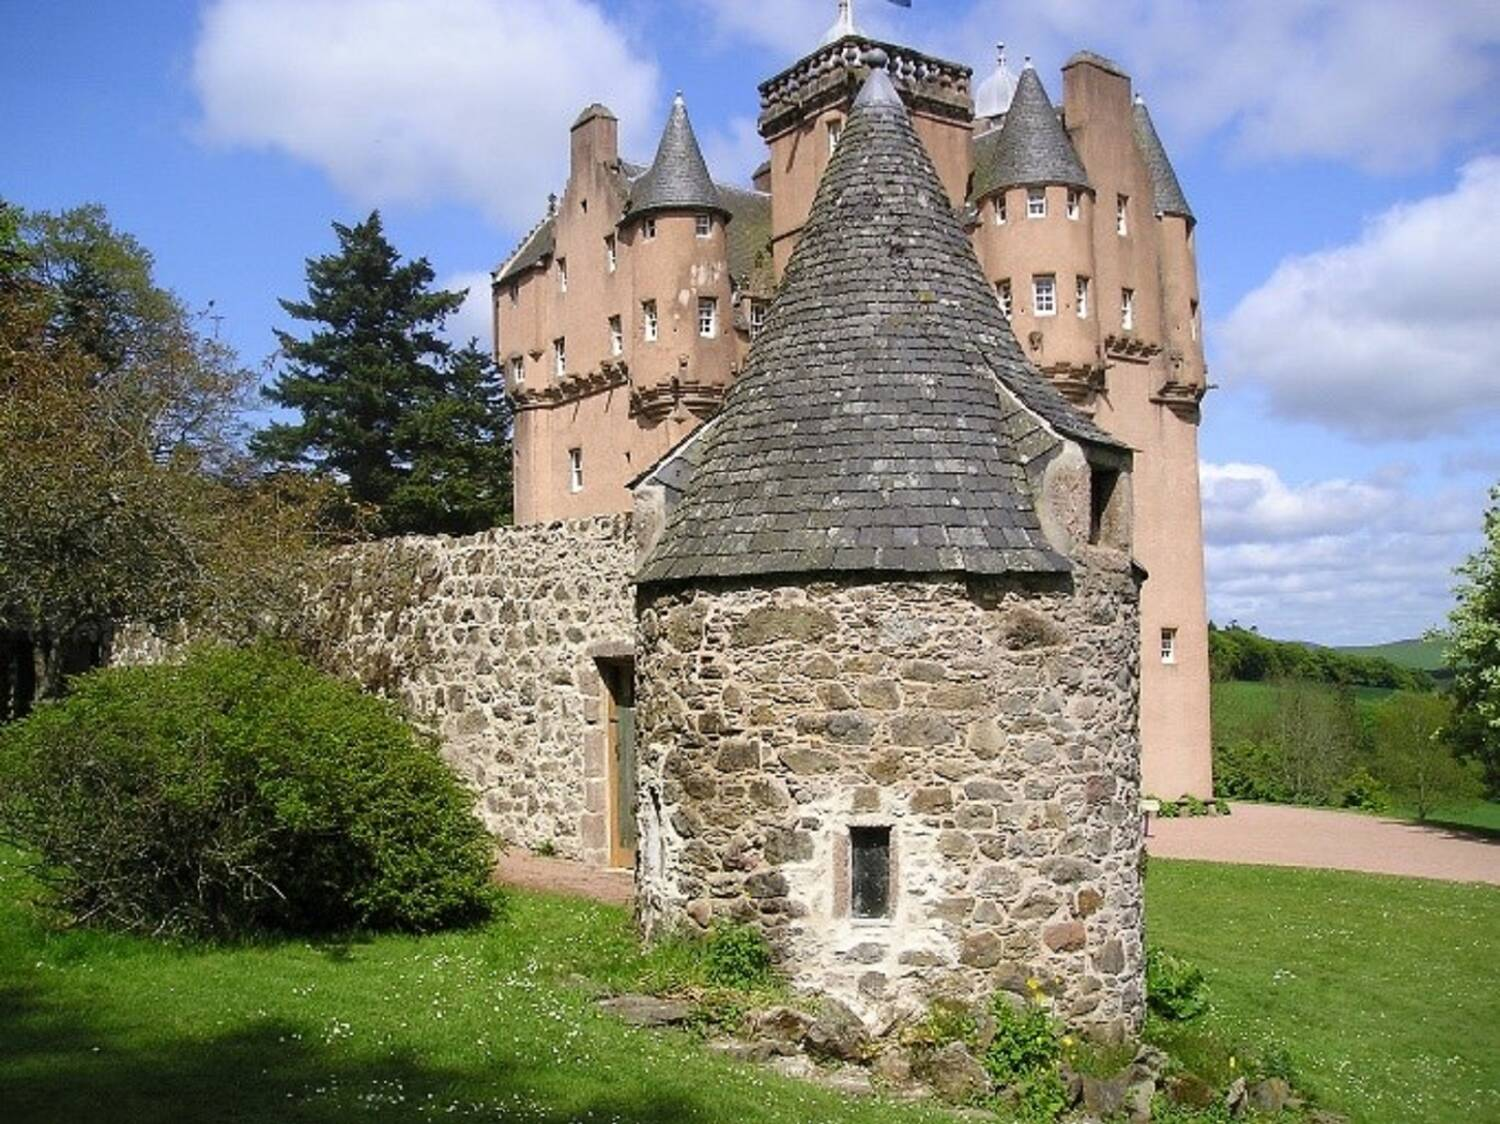 A view of a tall, turreted, pink-walled castle, with an older stone wall in the foreground. At the corner of the wall is a small tower, with a slate tiled conical roof. Green lawns, tall trees and shrubs otherwise surround the castle.